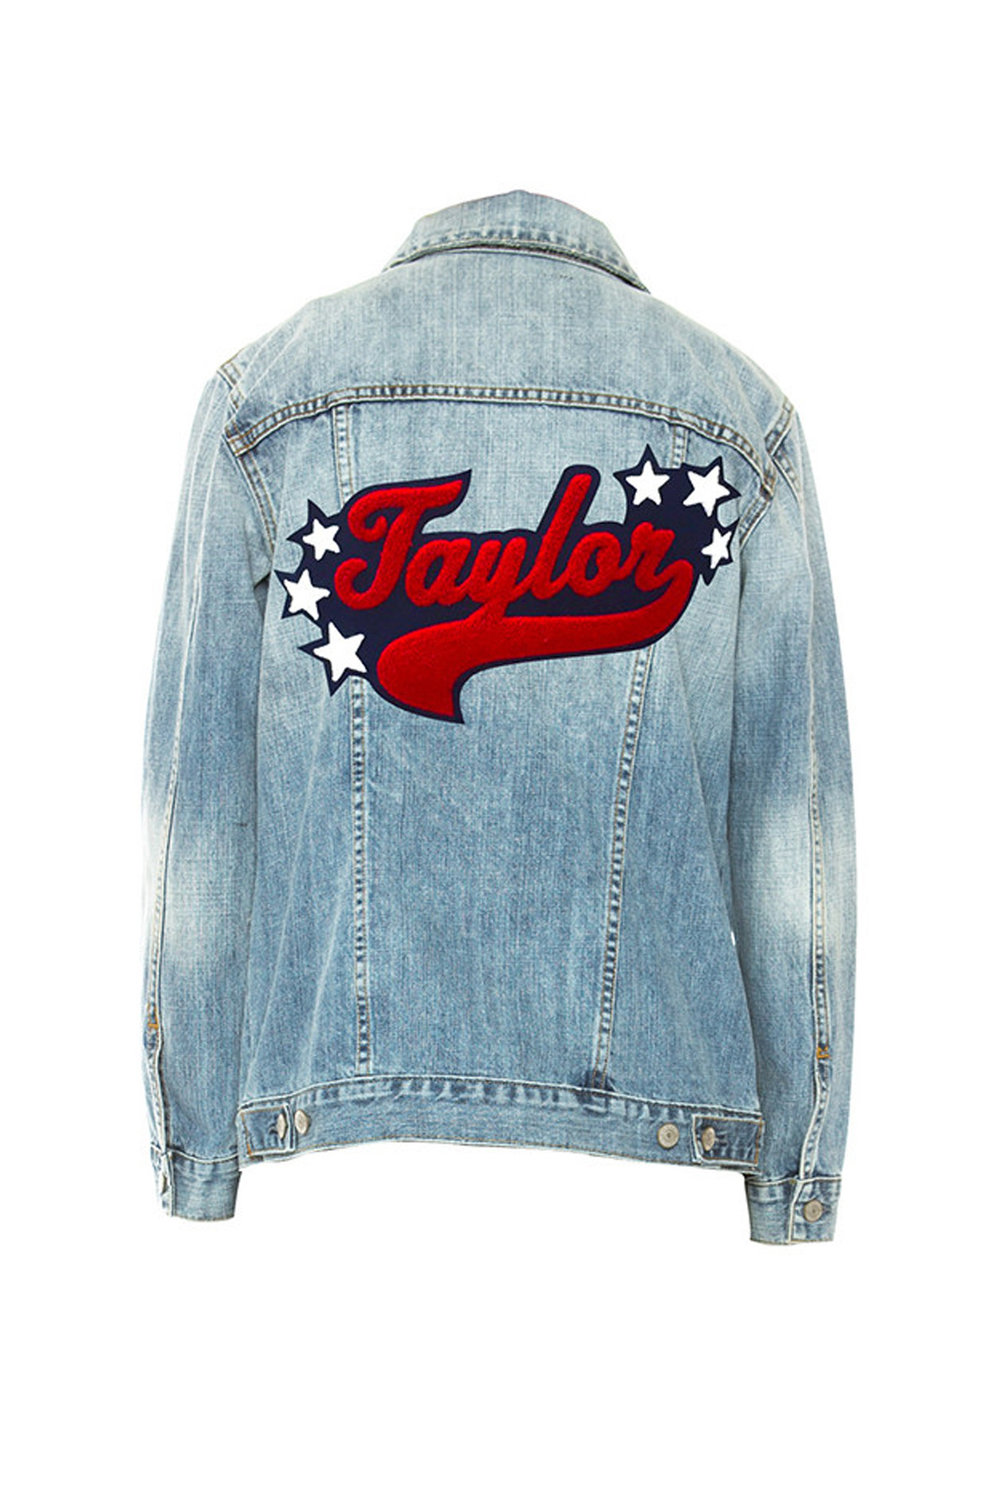 RAILS CUSTOM DENIM JACKET